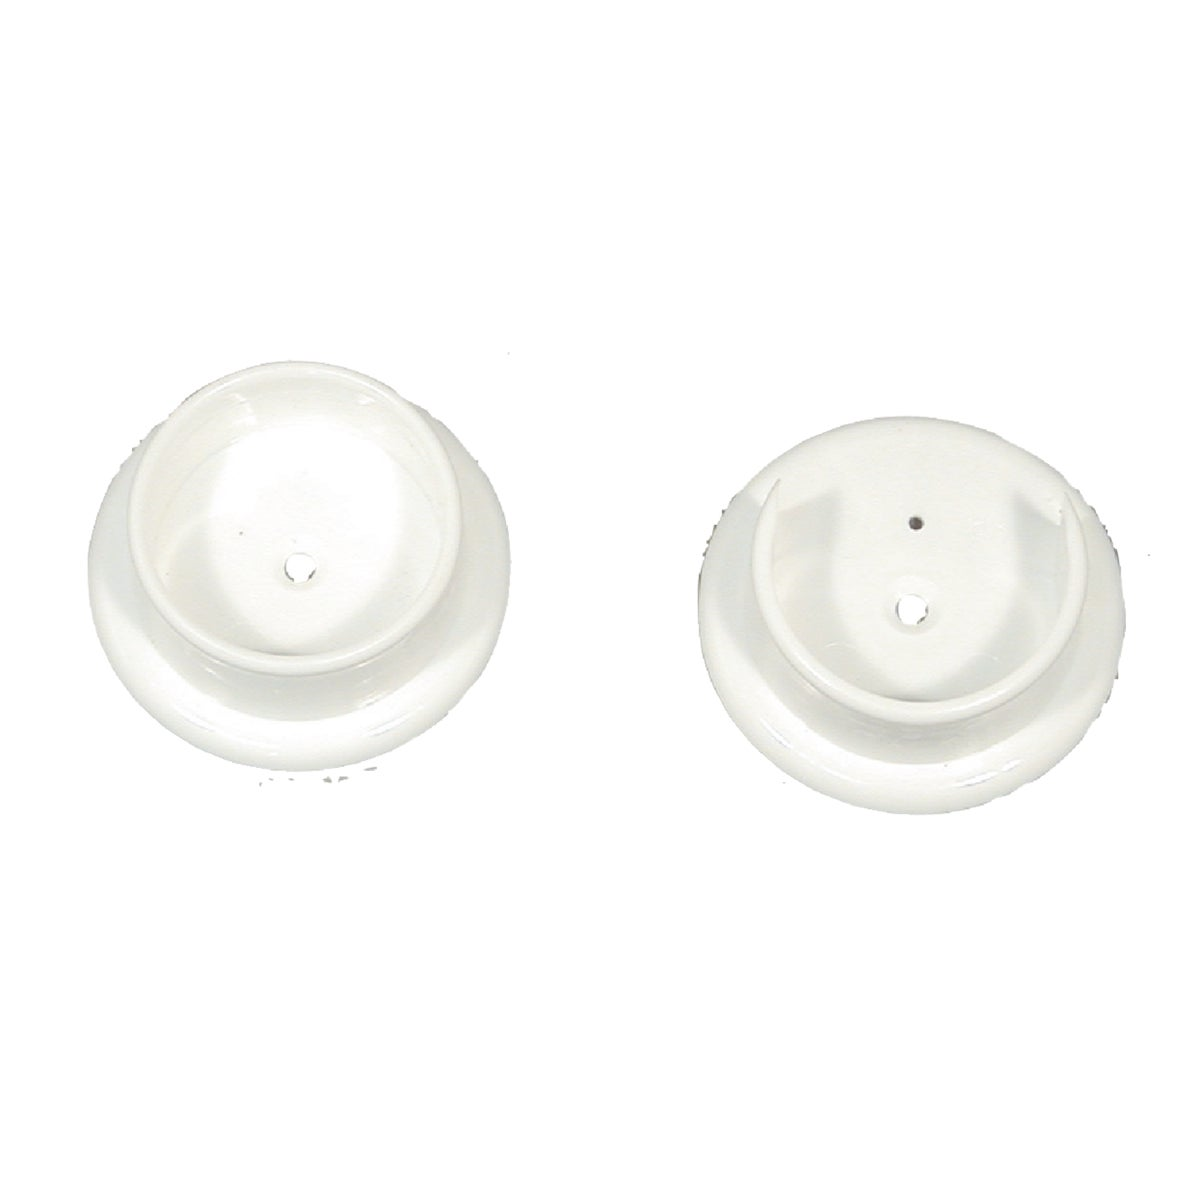 2PK WHT POLE SOCKET - BC-0037 by Knape & Vogt Mfg Co